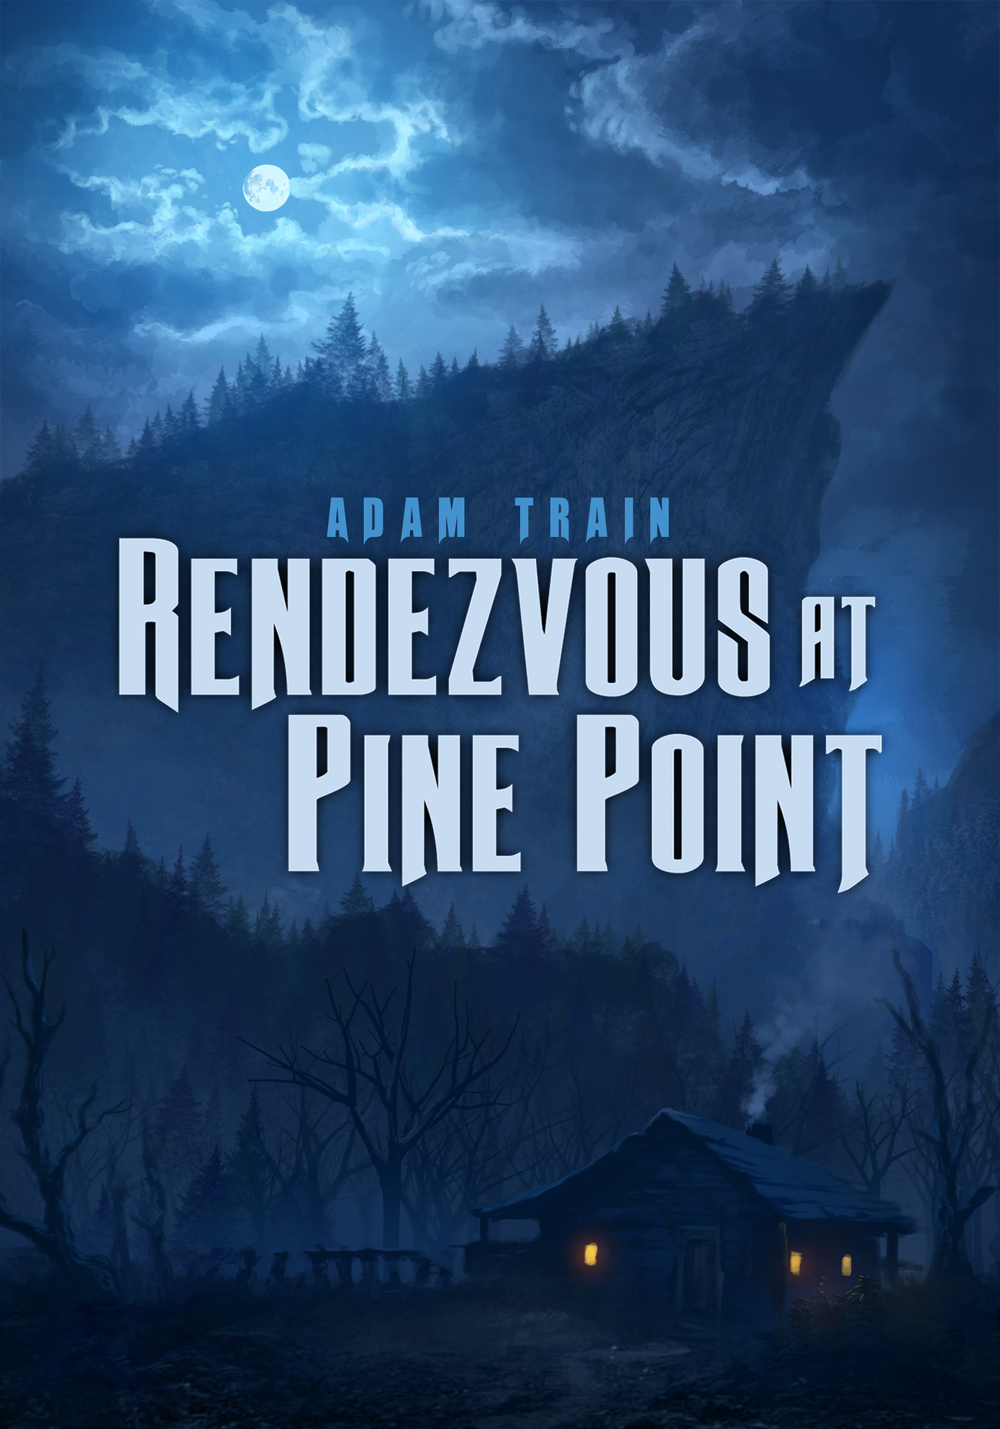 An outlaw on the run must spend a night in an isolated mountain shack. There he is confronted with the ghosts of his past and his future fate.